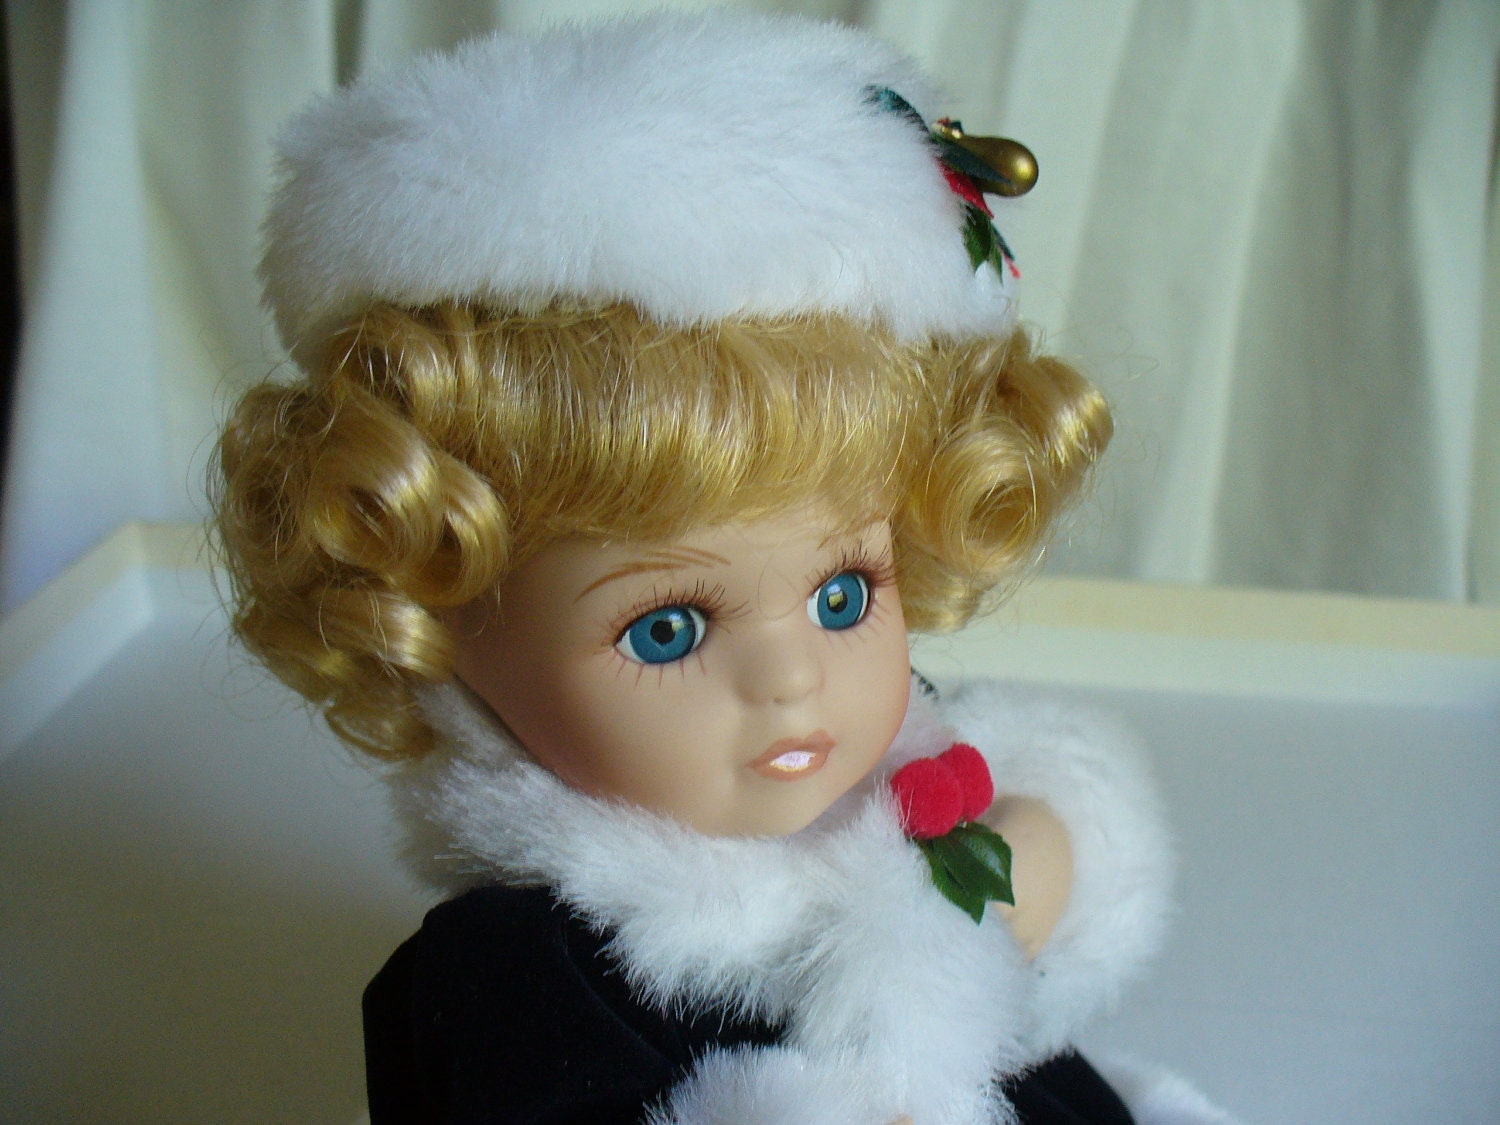 Christmas Porcelain Doll.  Blue Eyed Porcelain Doll with Blonde Hair.  Vintage. Collectibles. CIJ